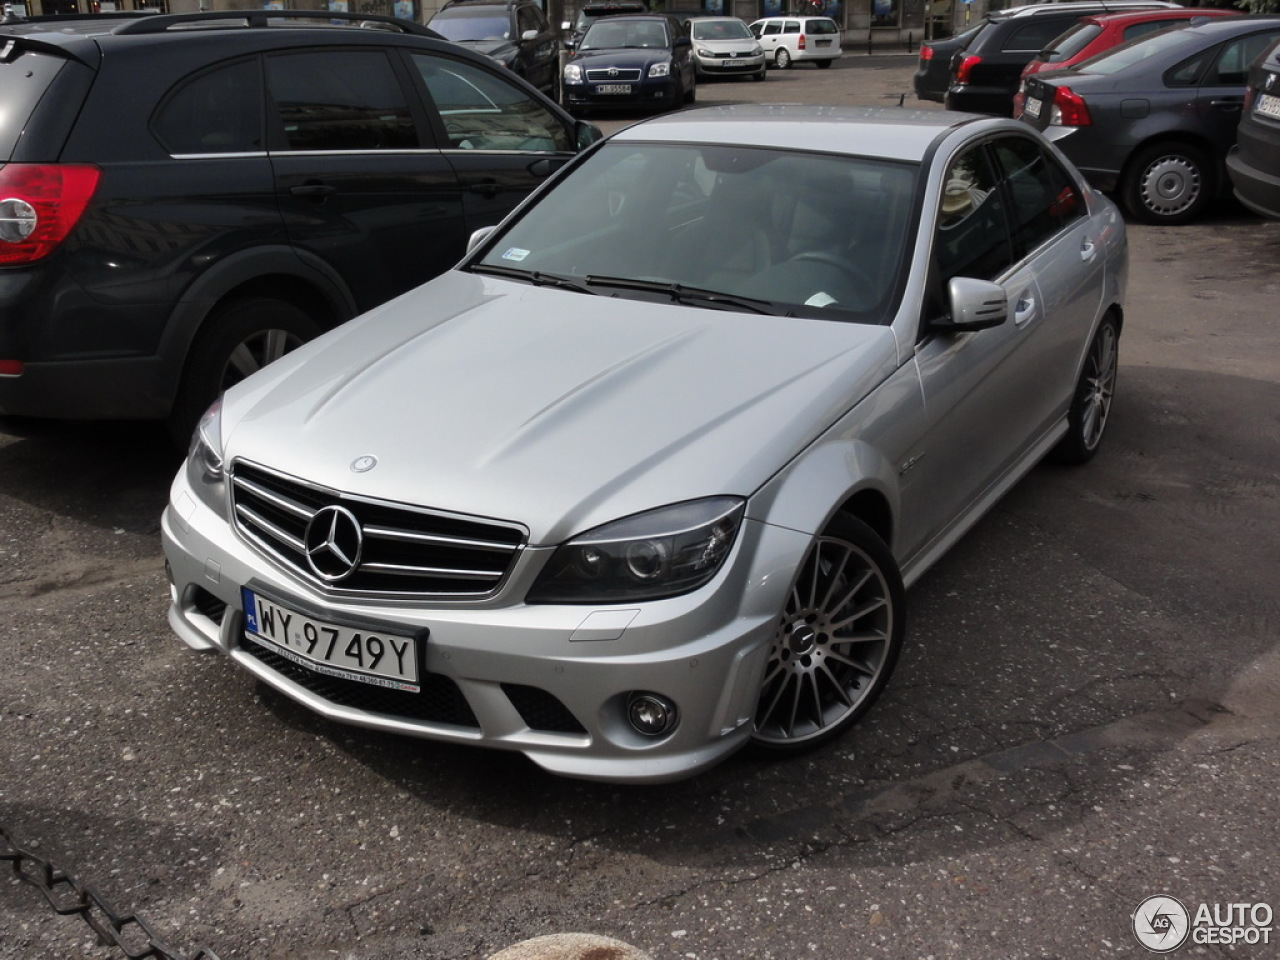 mercedes benz c 63 amg w204 11 november 2012 autogespot. Black Bedroom Furniture Sets. Home Design Ideas